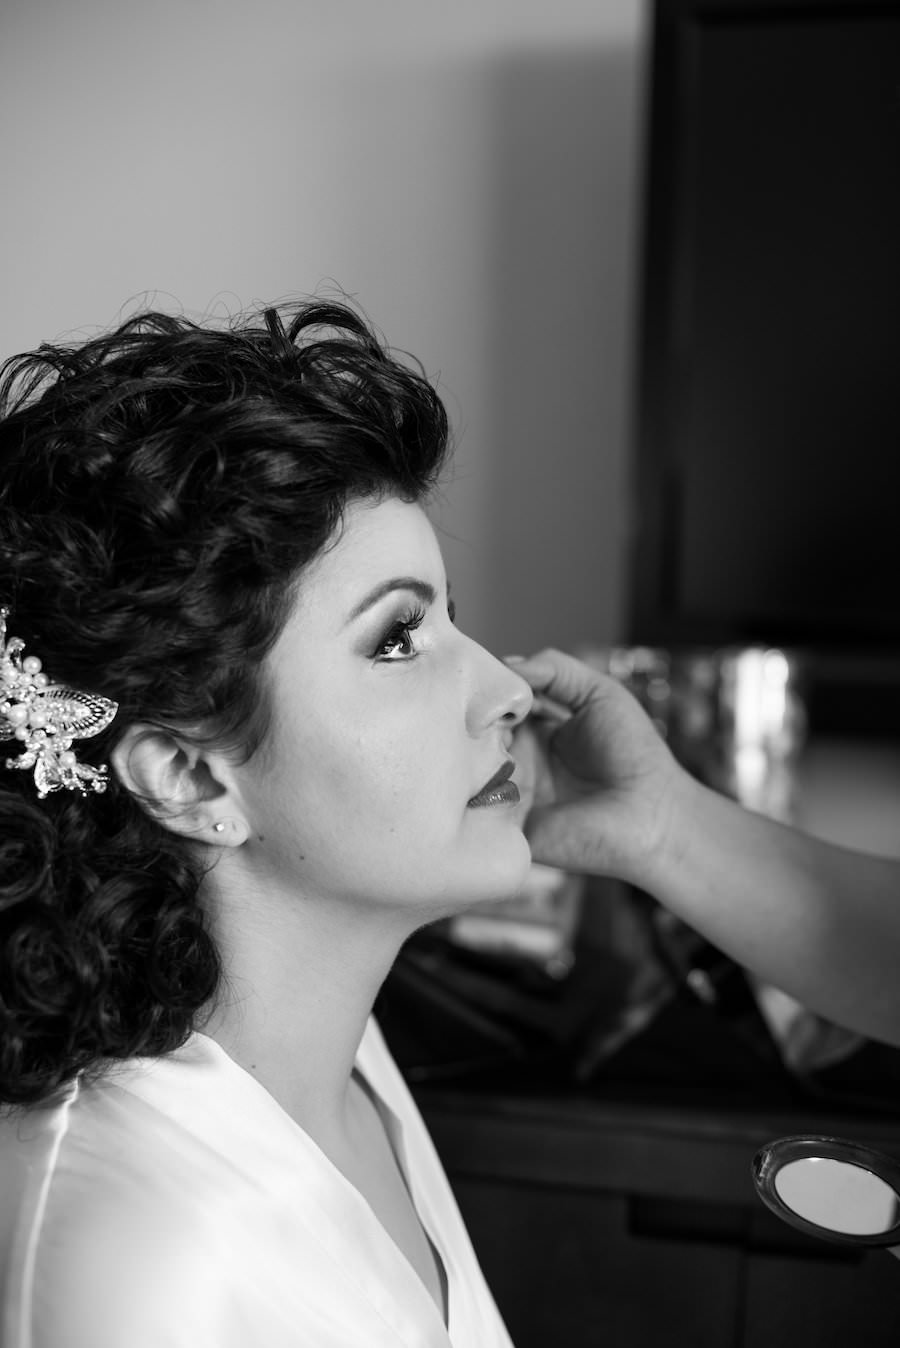 Tampa Bridal Hair and Makeup Getting Ready Portrait   Tampa Wedding Hair and Makeup Artists Michele Renee the Studio  Tampa Wedding Photographers Caroline and Evan Photography